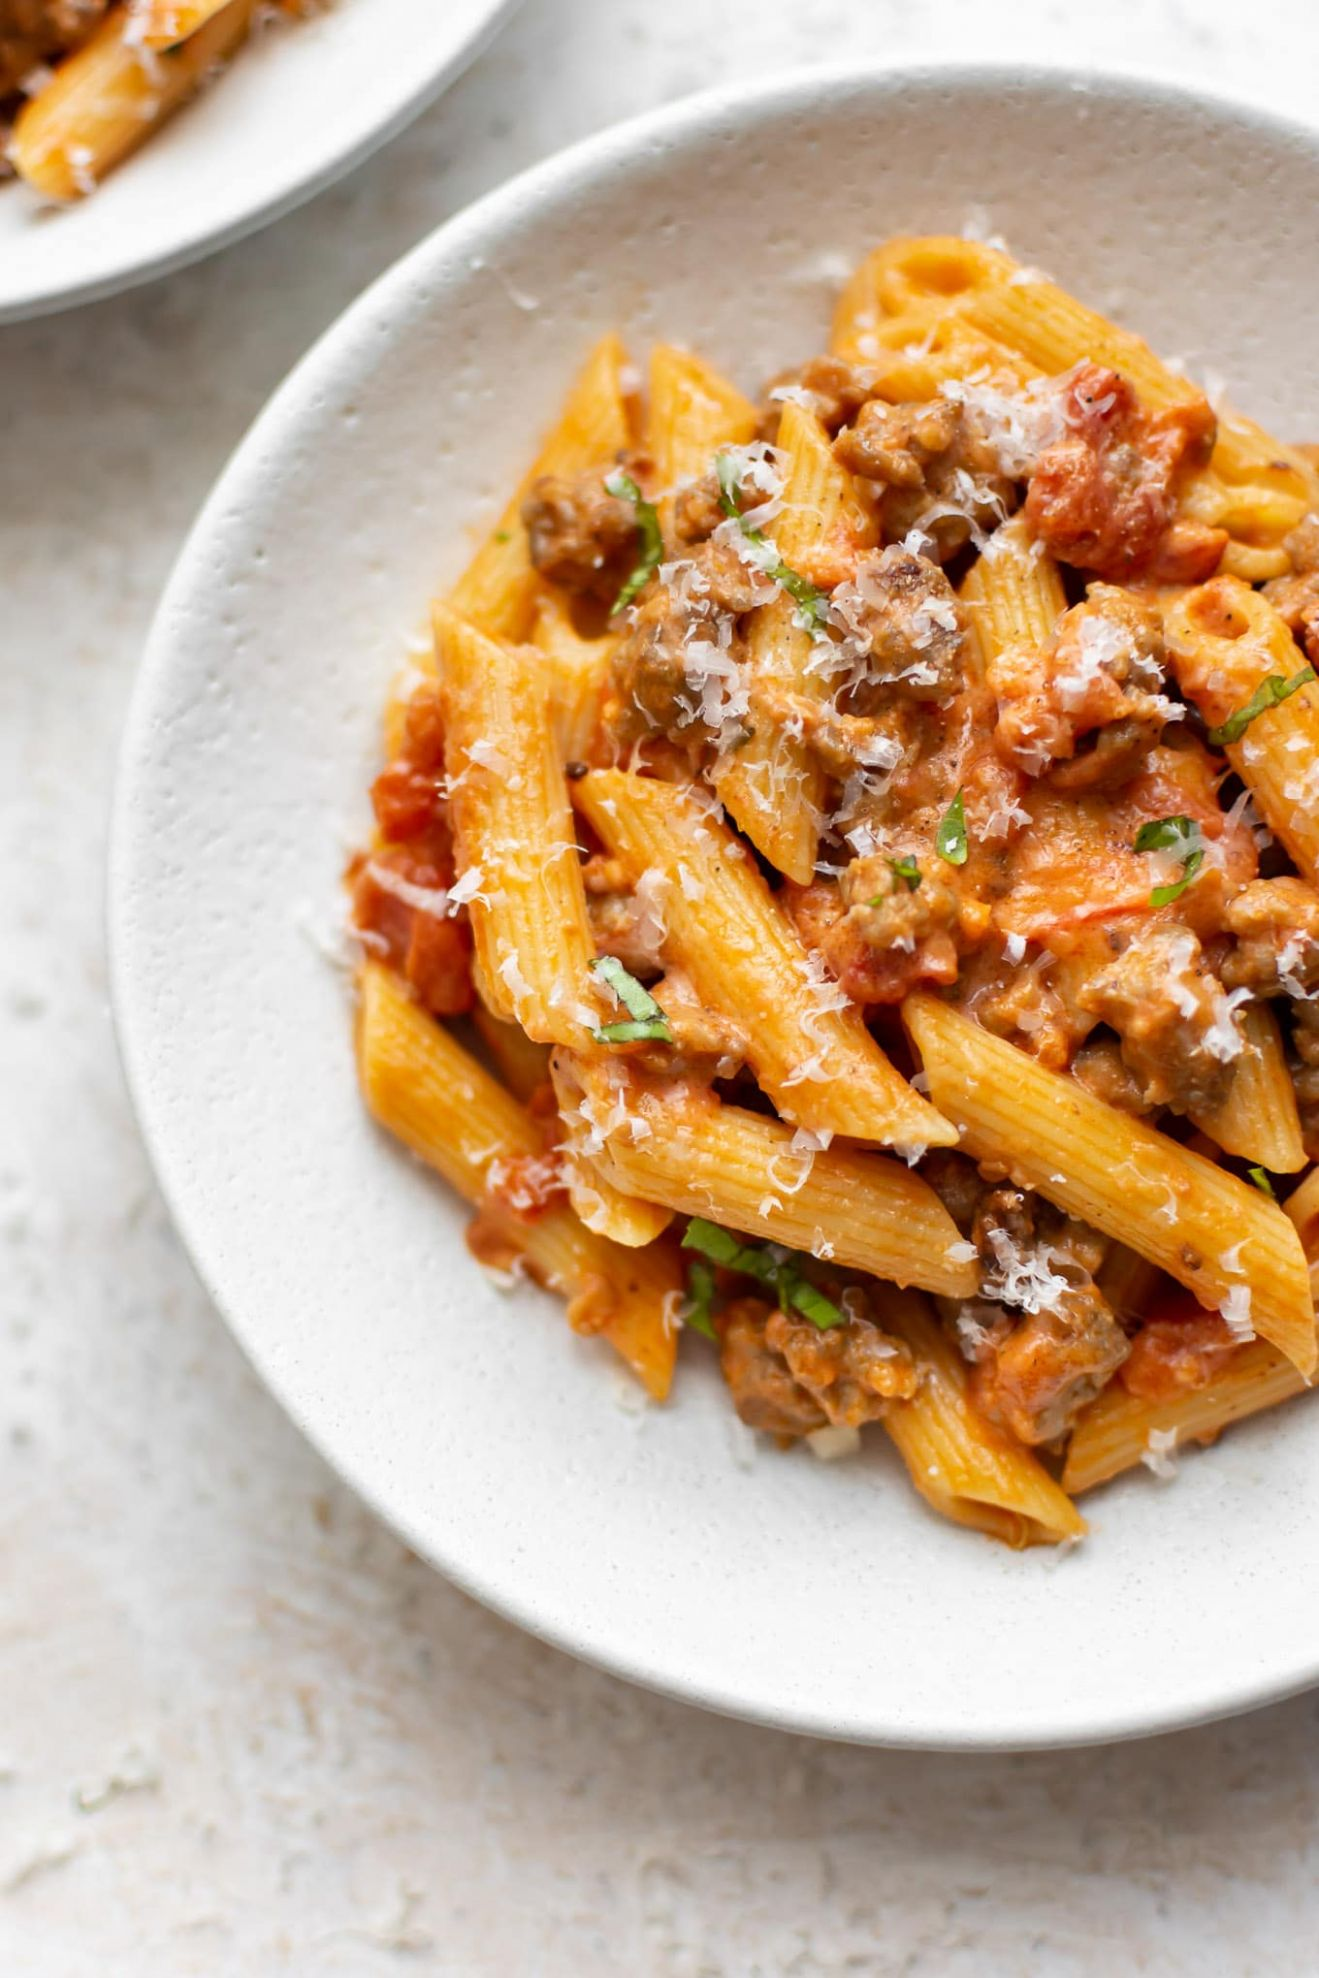 Spicy Italian Sausage Pasta - Recipes Pasta With Sausage